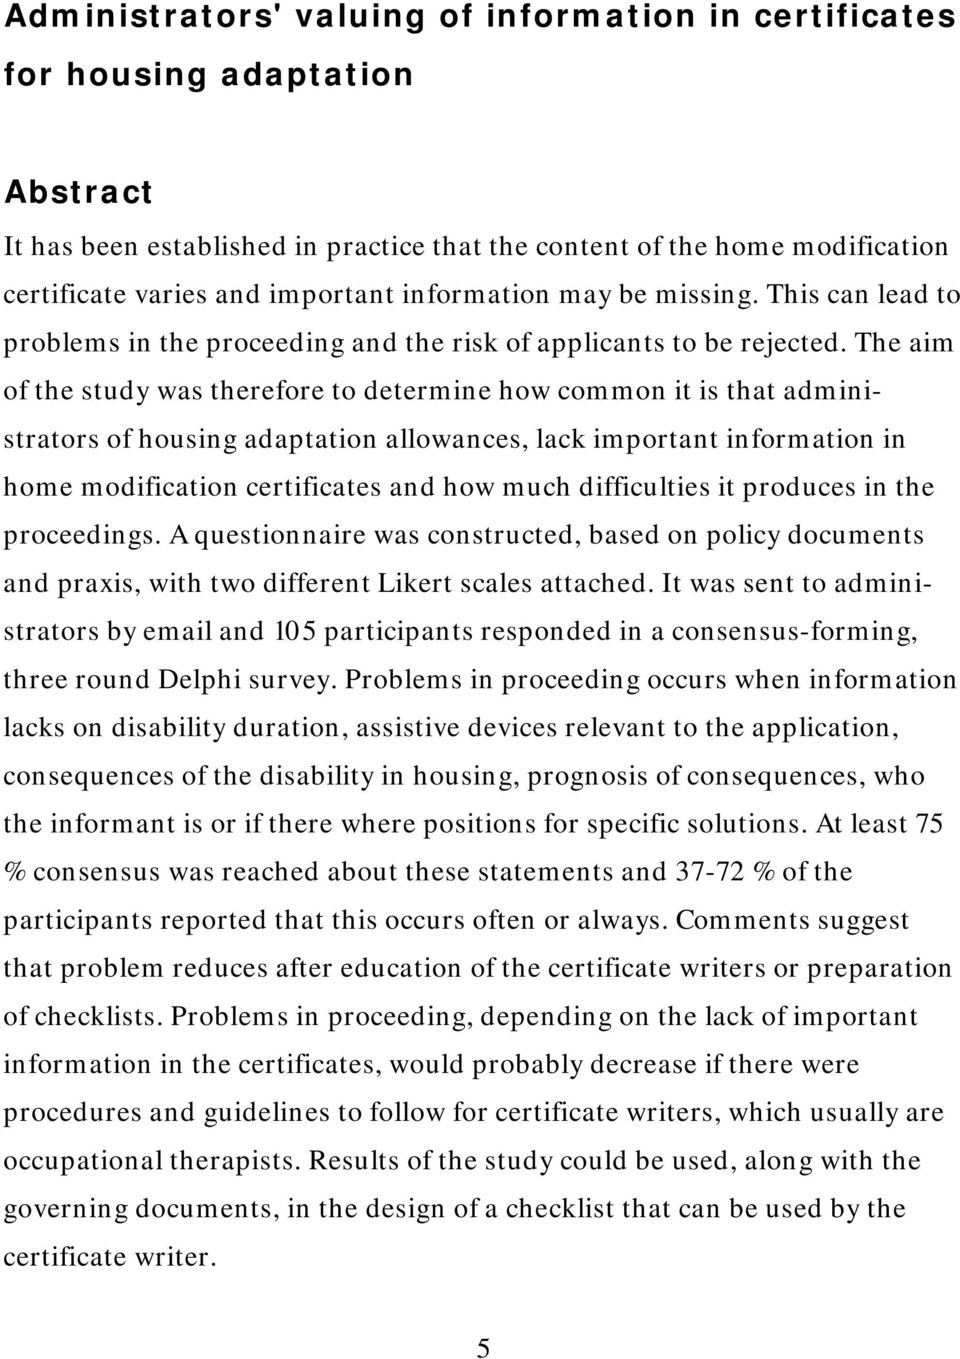 The aim of the study was therefore to determine how common it is that administrators of housing adaptation allowances, lack important information in home modification certificates and how much